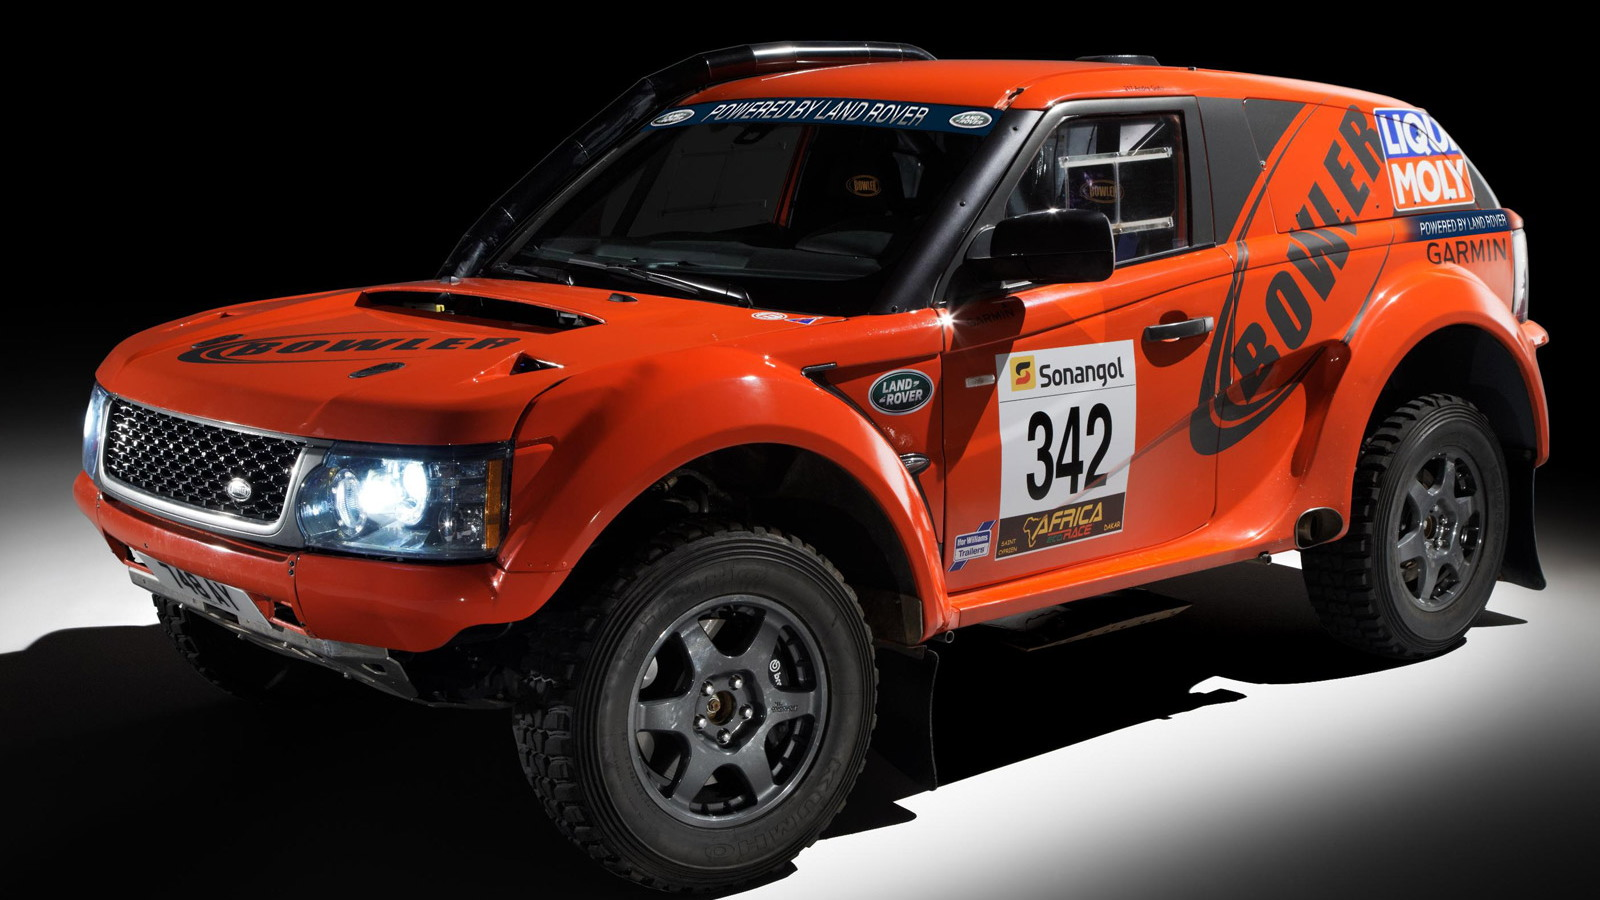 Bowler EXR rally raid SUV based on the Range Rover Sport